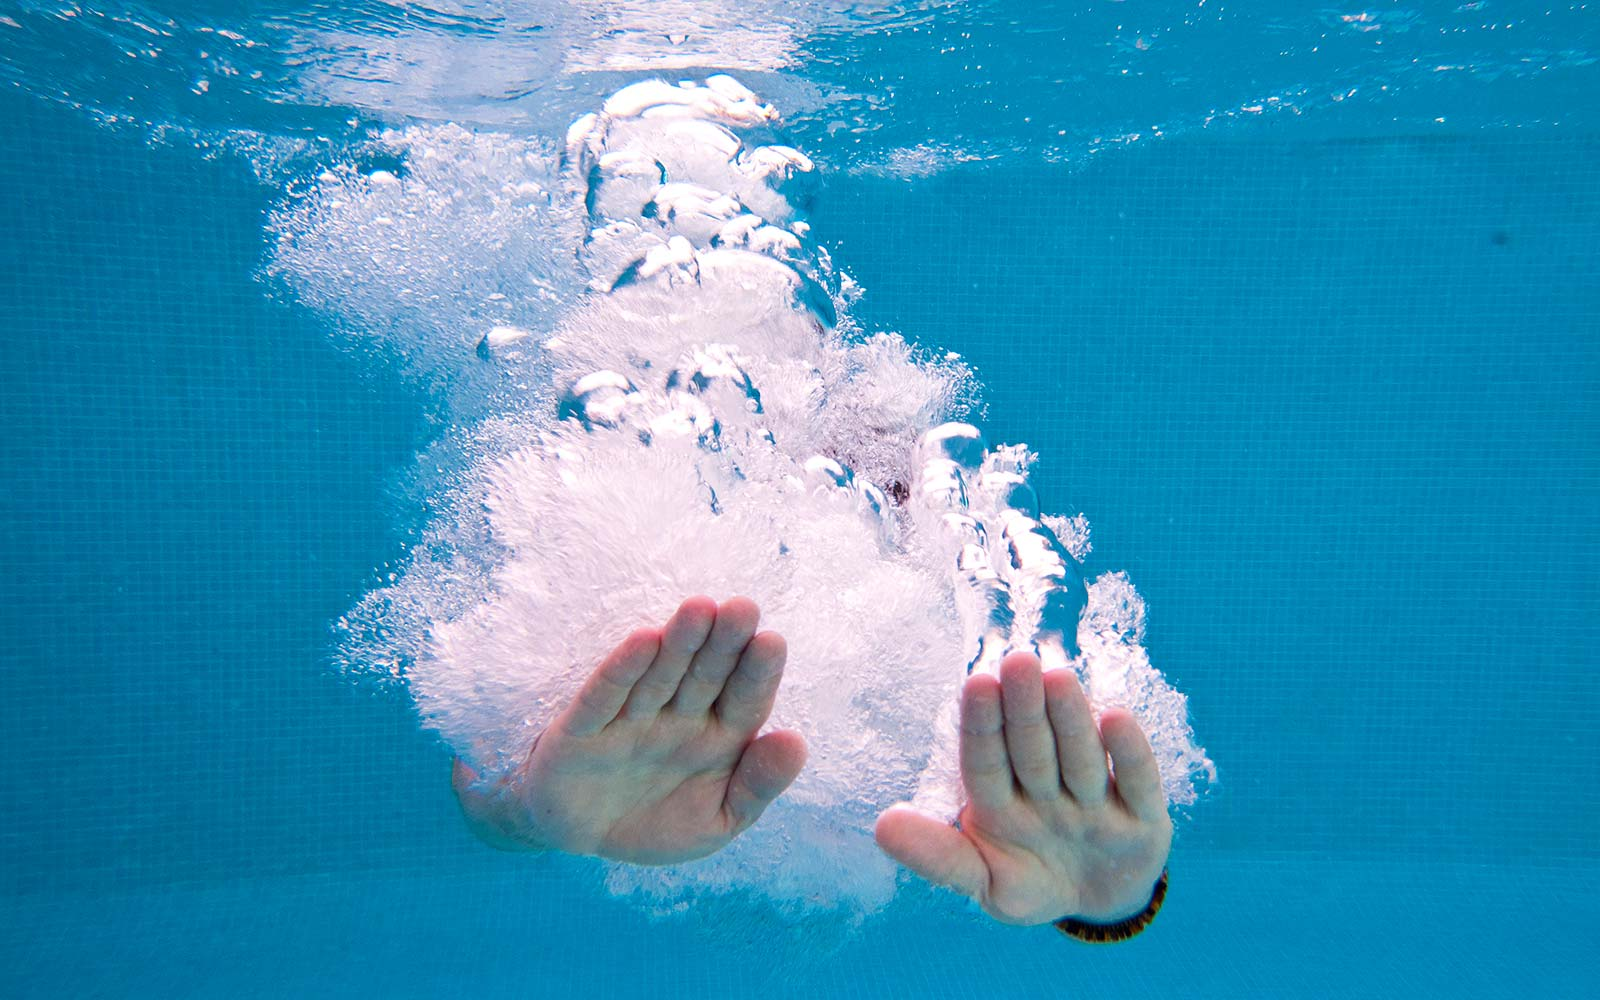 Why your hands wrinkle in water